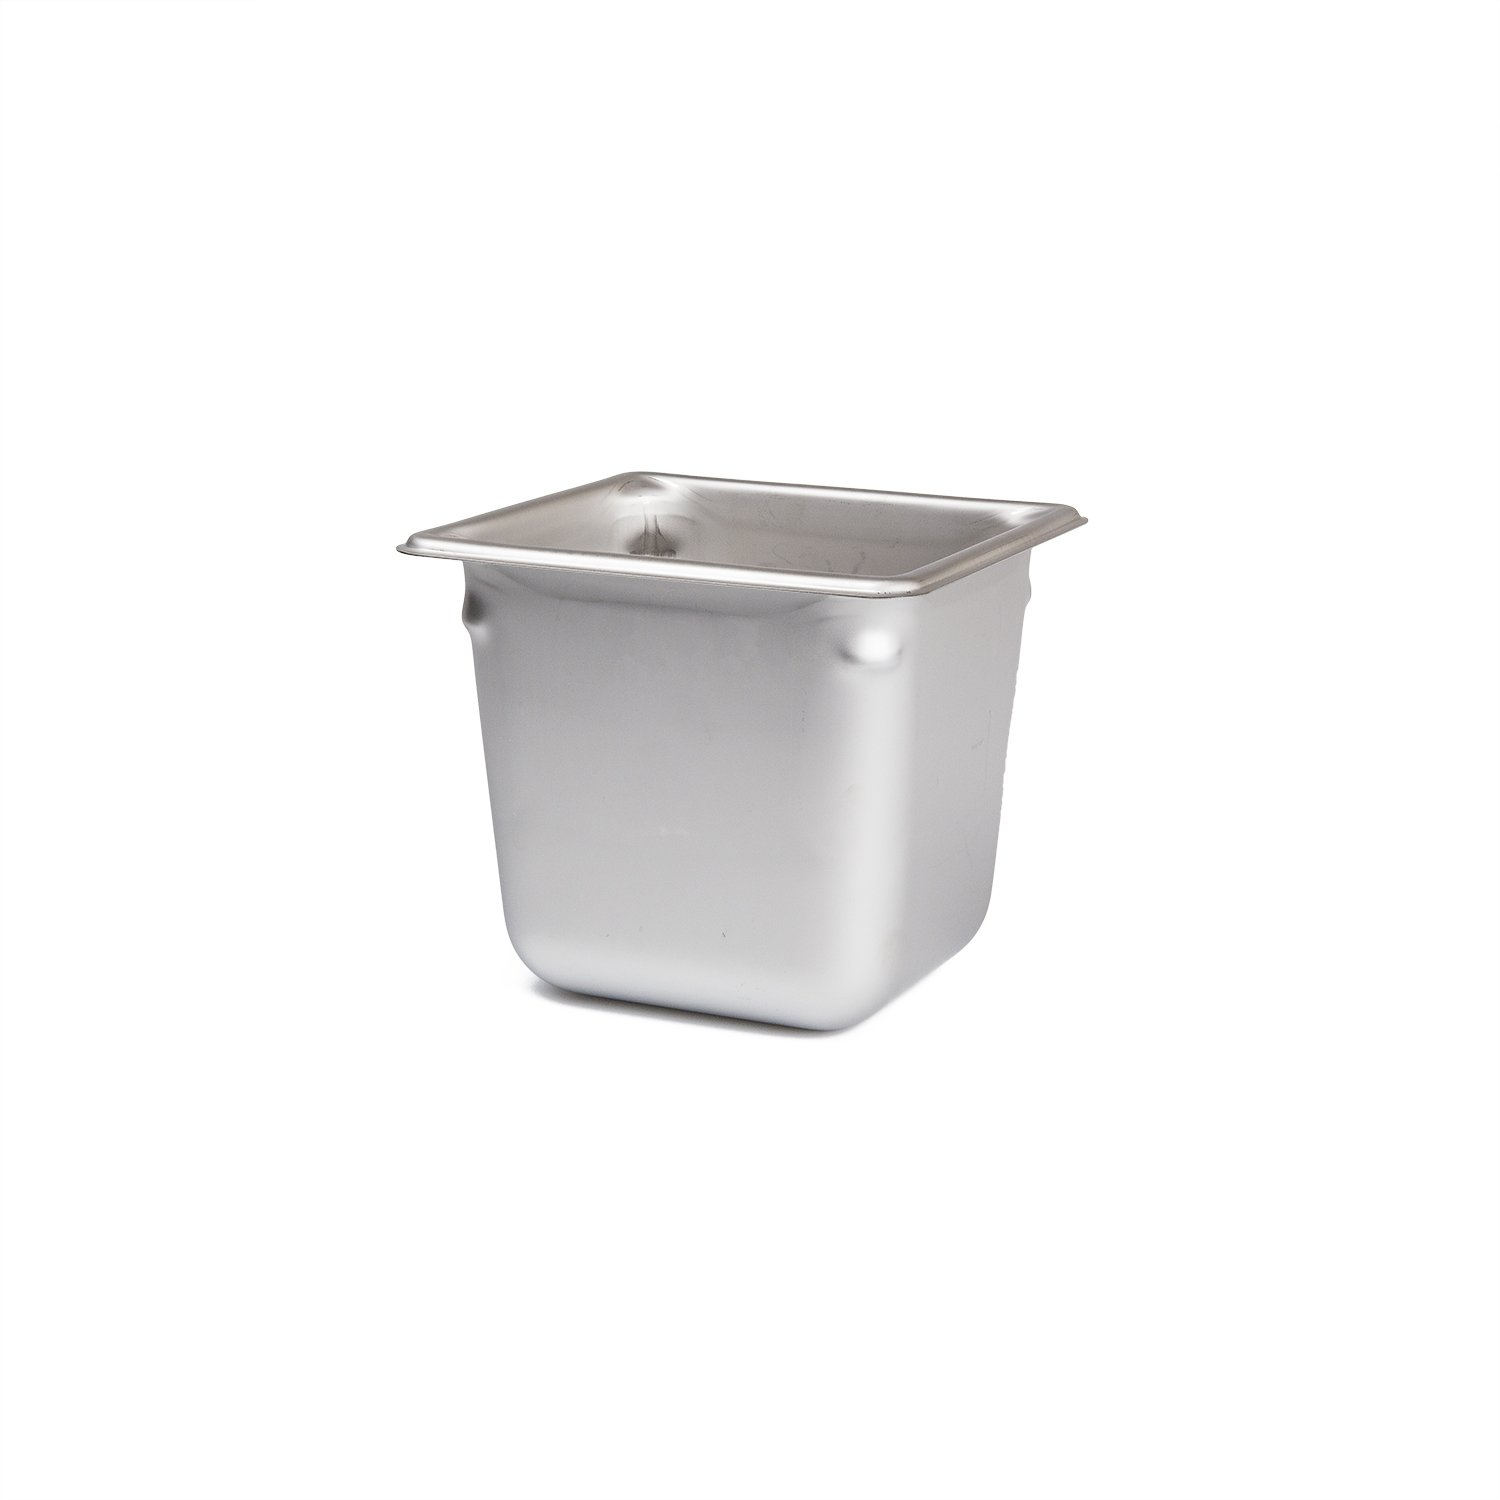 Medegen Medical Products 30662 Tray, 1/6'', 6-7/8'' x 6-1/4'' x 6'', Stainless Steel